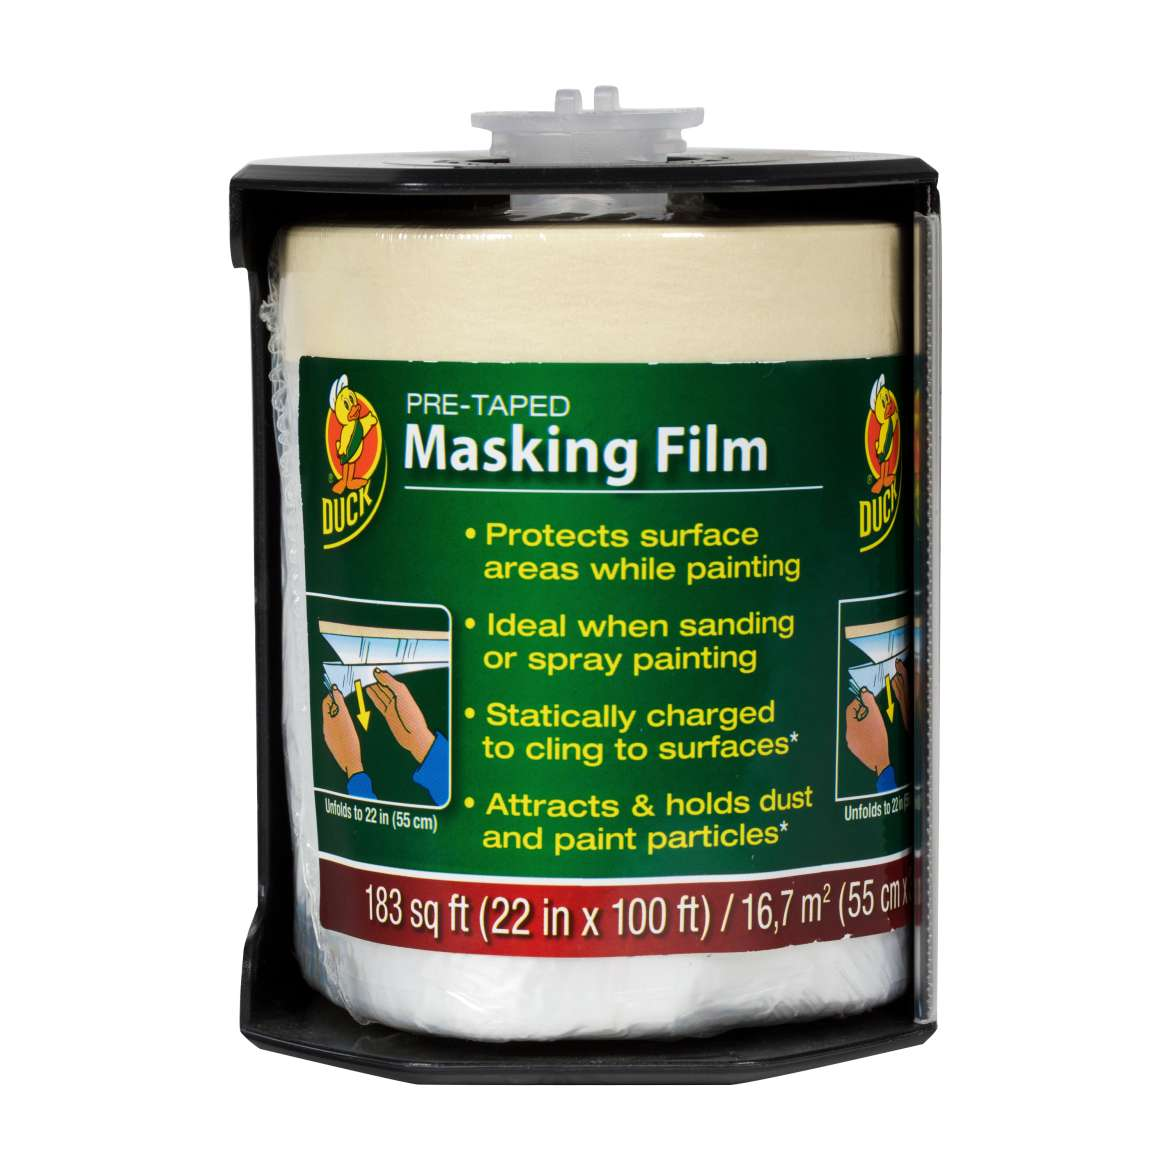 Duck® Brand Pre-Taped Masking Film - Clear, 22 in. x 100 ft. Image